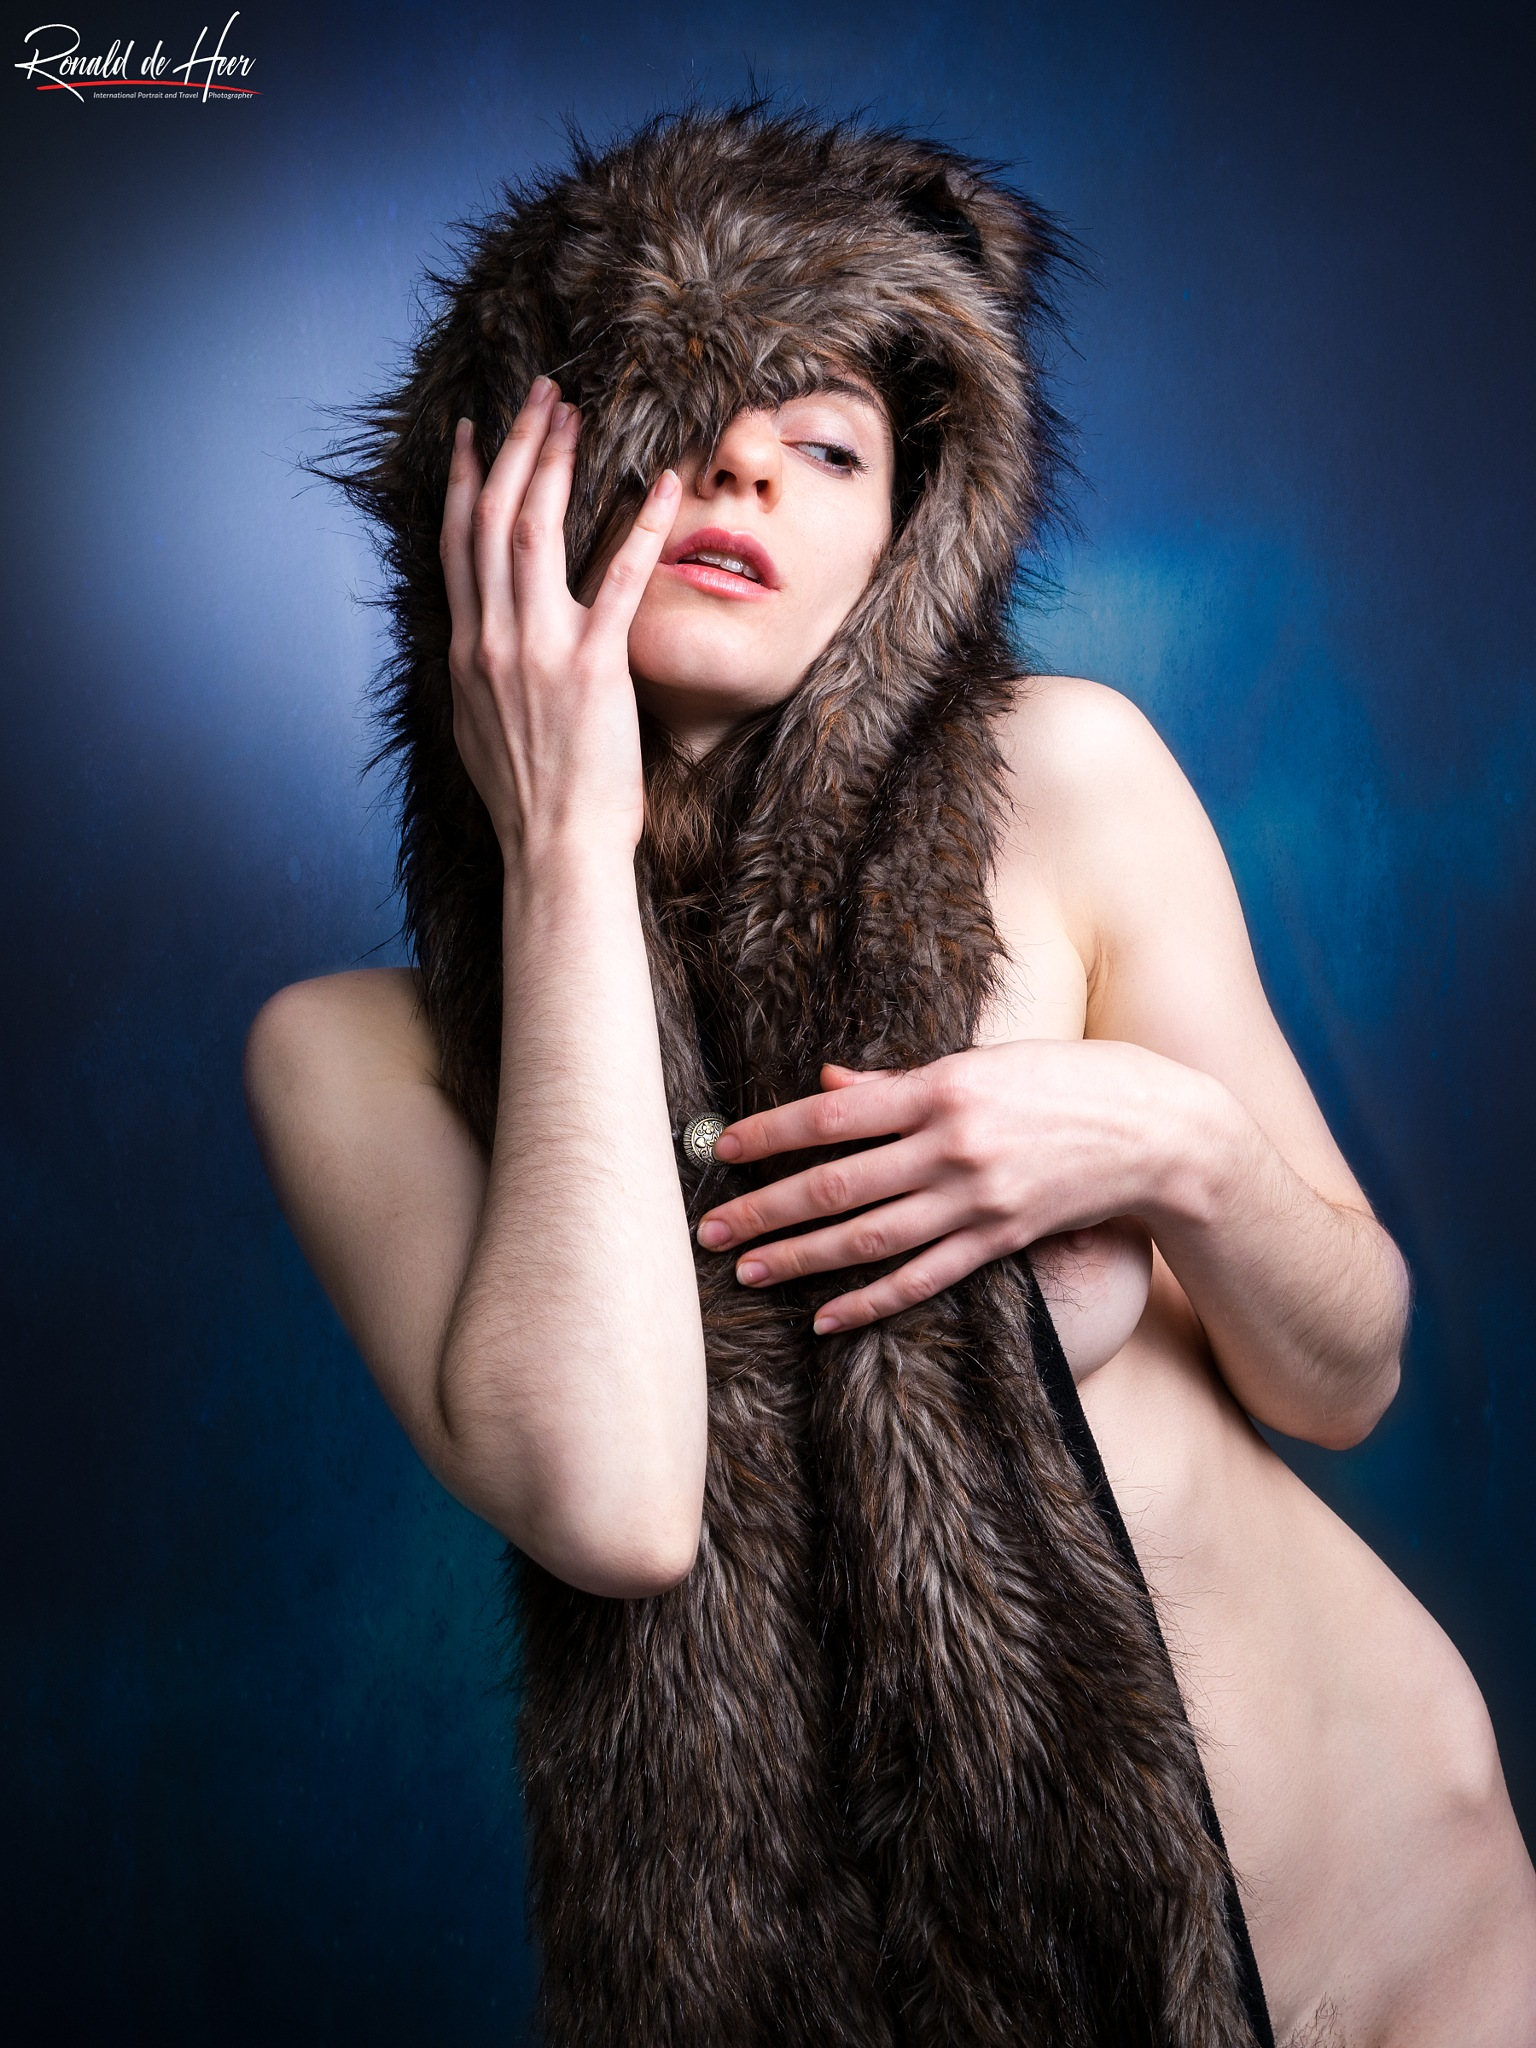 I have a Bear inside of me by DEHEER PHOTOGRAPHY